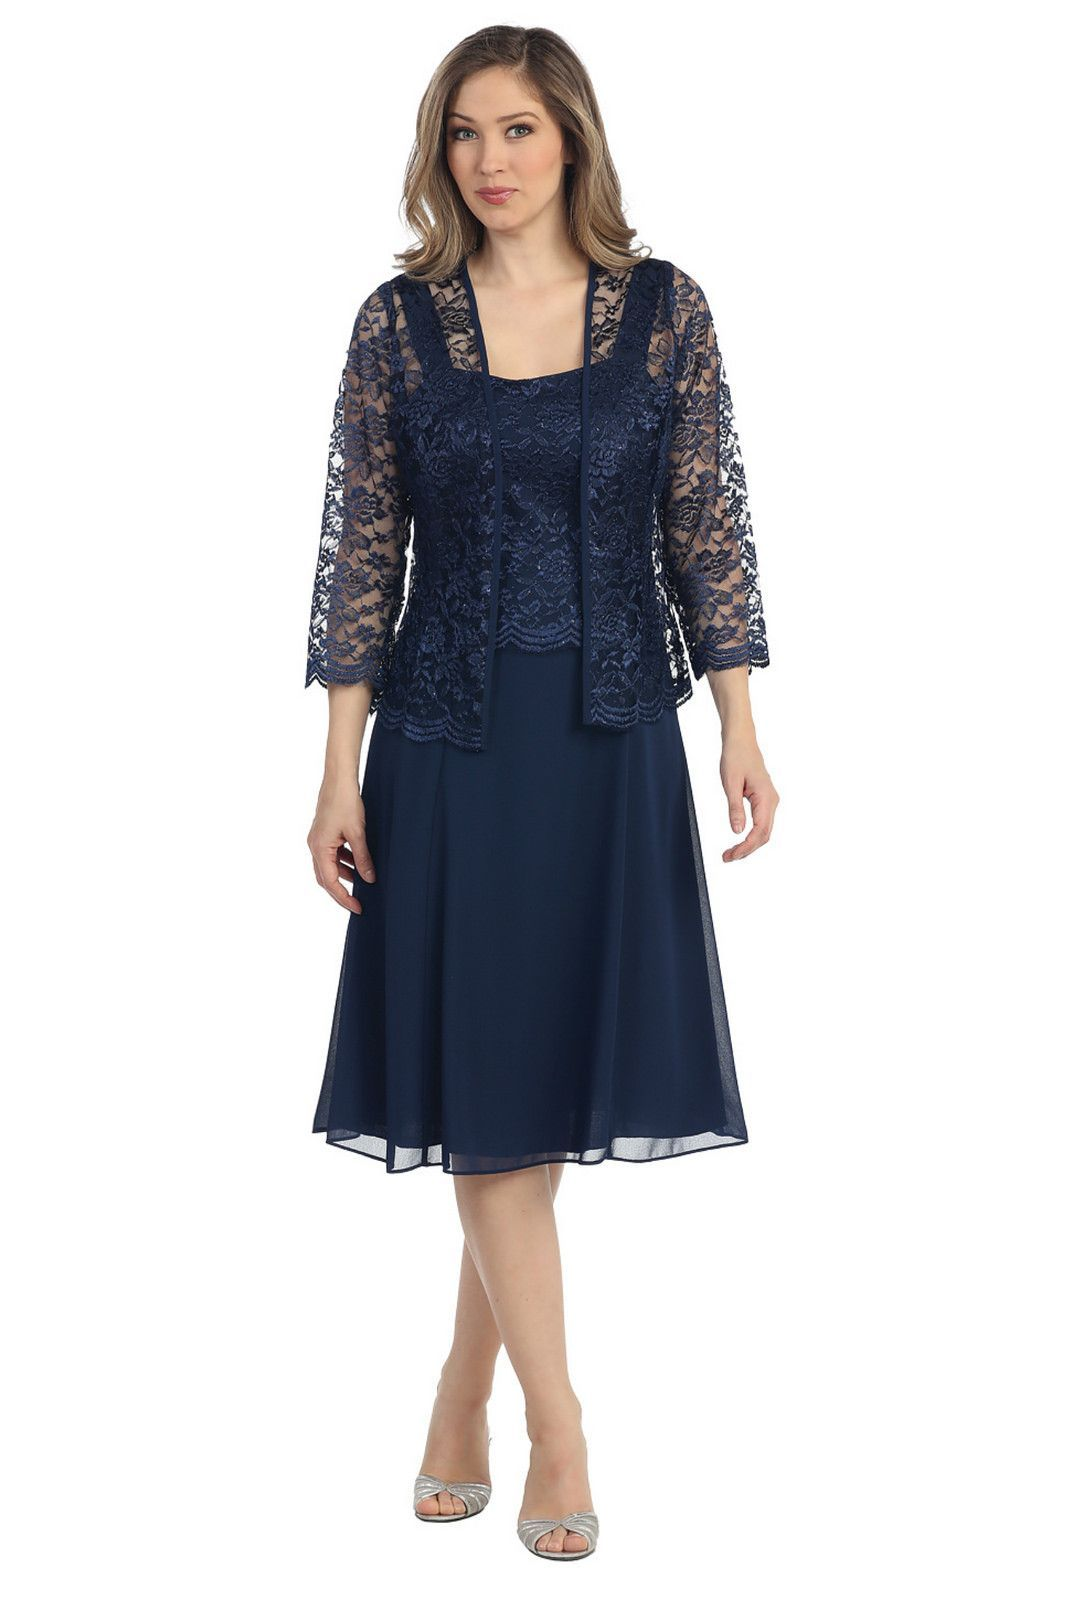 bdacecb42e42a Short Mother of the Bride Dress with Jacket Plus Size Formal Cocktail - The  Dress Outlet - 4